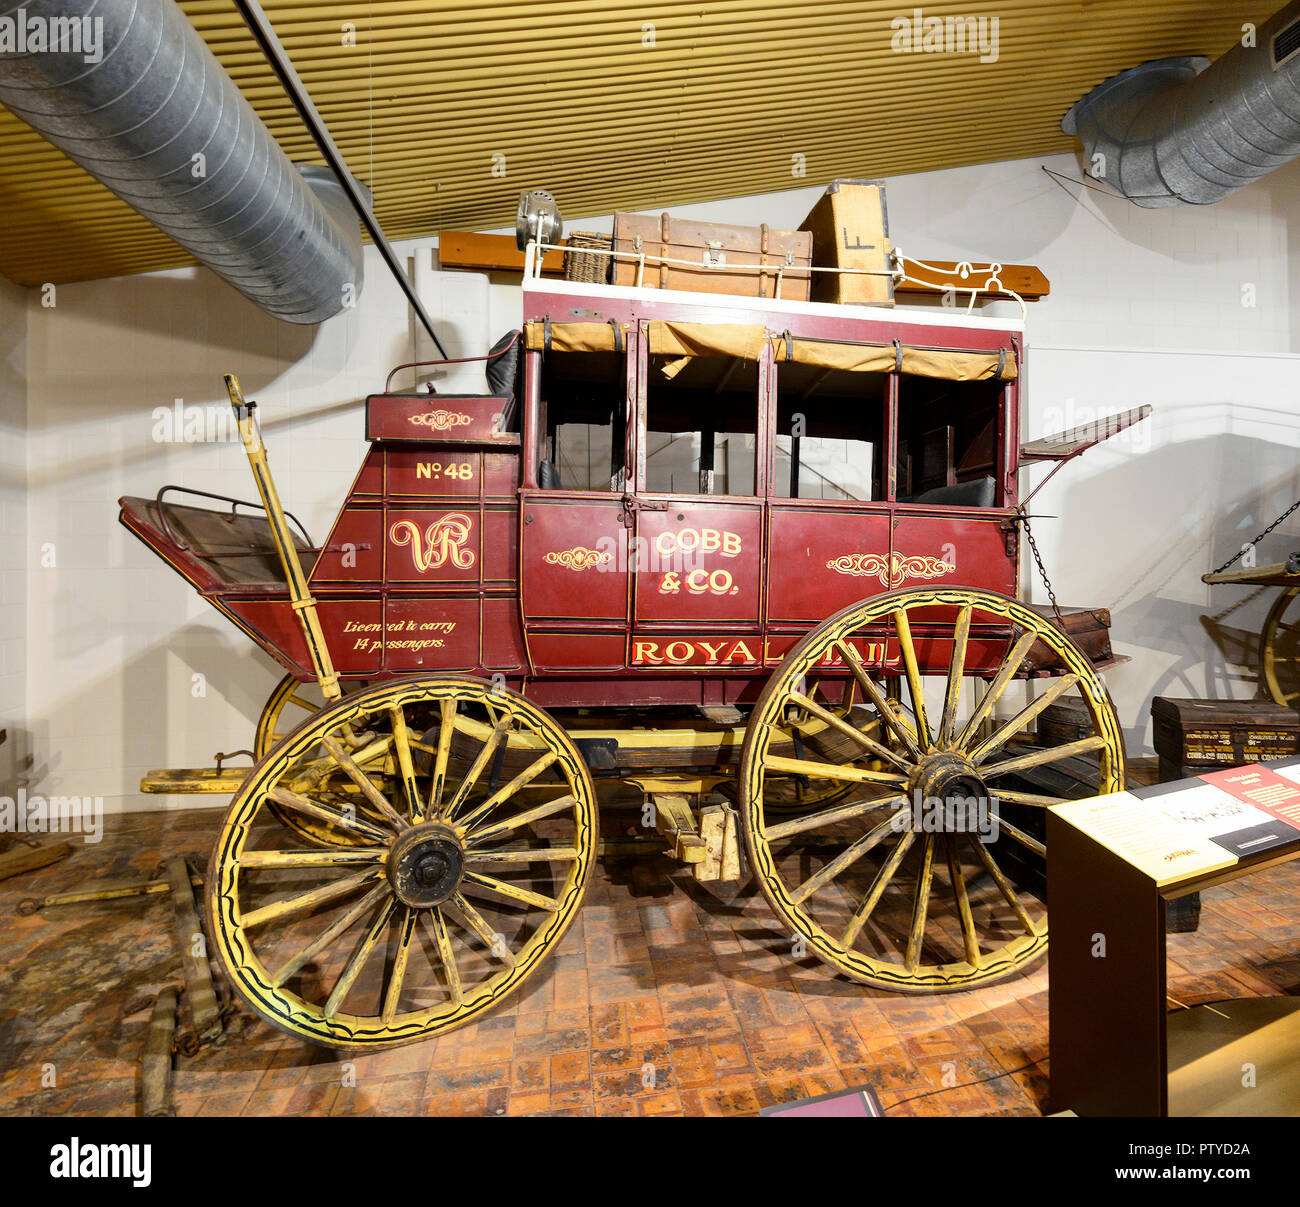 Cobb & Co. Coach 48 on display at the Cobb & Co Museum, Toowoomba, Southern Queensland, QLD, Australia - Stock Image